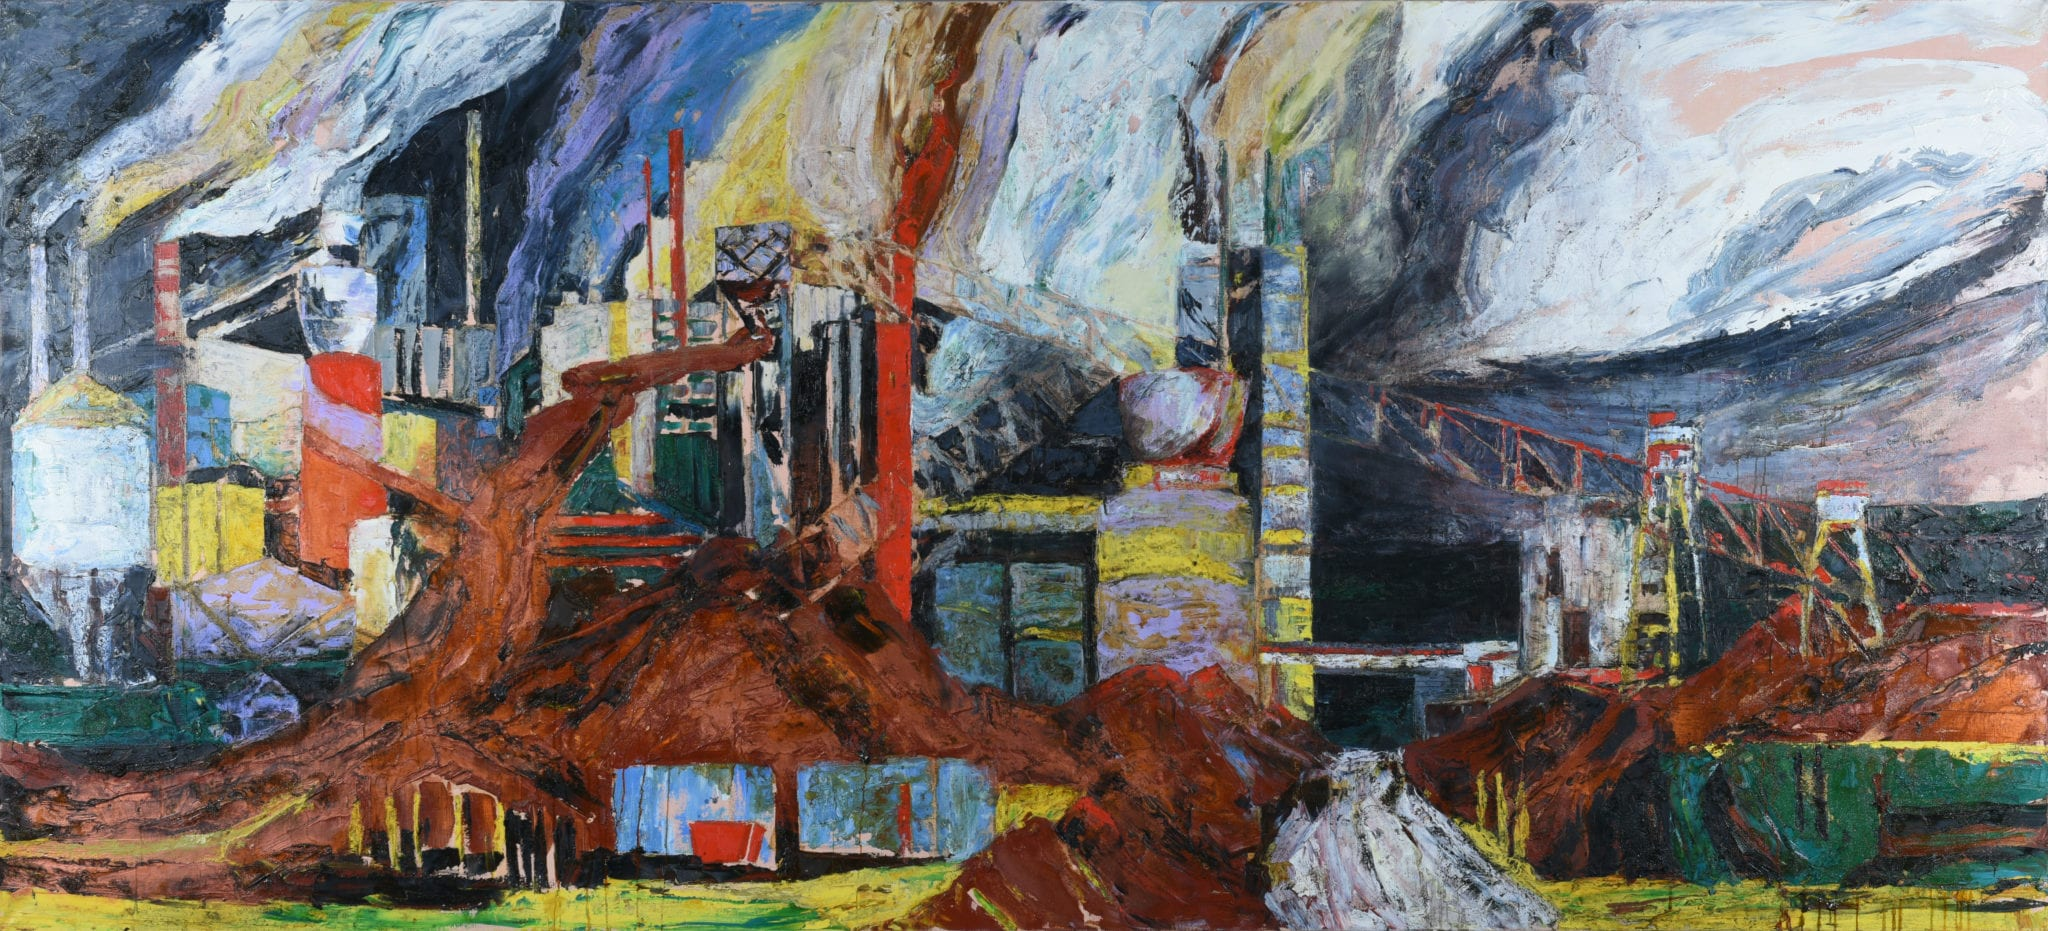 Mandy Martin, APM Rain, Steam and Speed, 1989, Oil on linen, 180 x 396 cm, Latrobe Regional Gallery Collection, purchased by The Bank of Melbourne Regional Art Collection, 1997